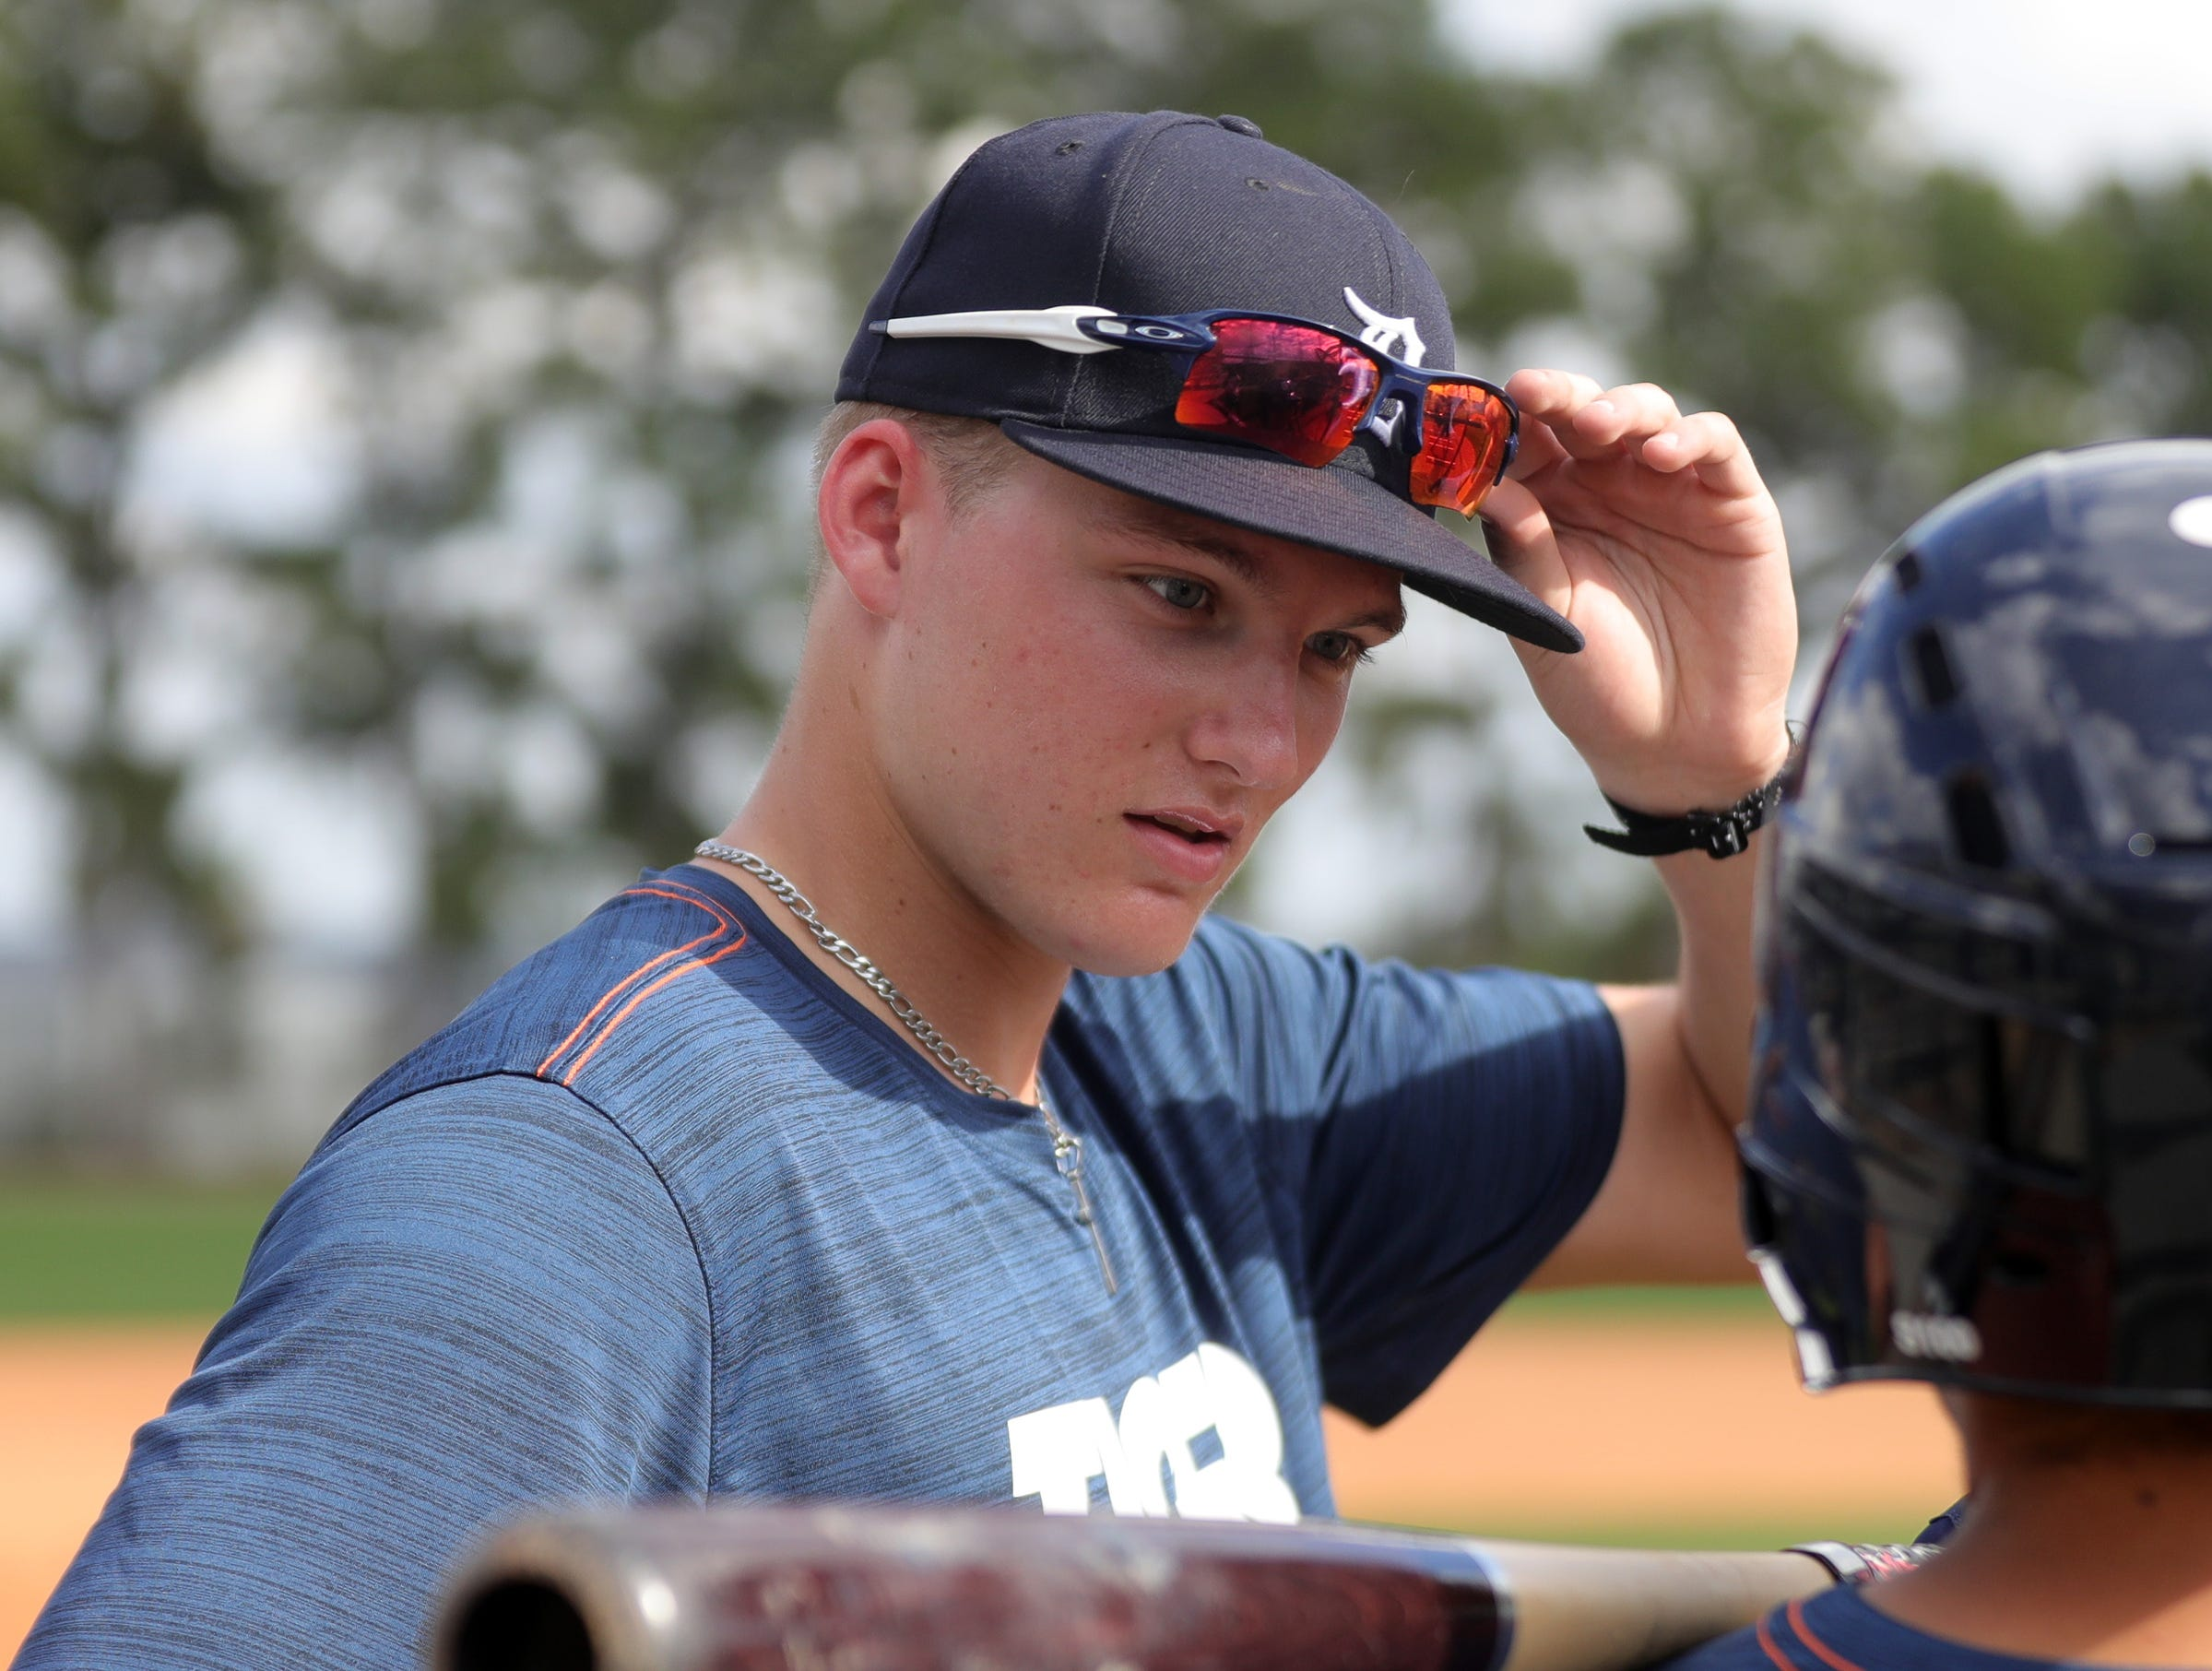 Tigers outfield prospect Parker Meadows talks with a teammate during spring training Wednesday, Feb. 20, 2019, at Joker Marchant Stadium in Lakeland, Fla.